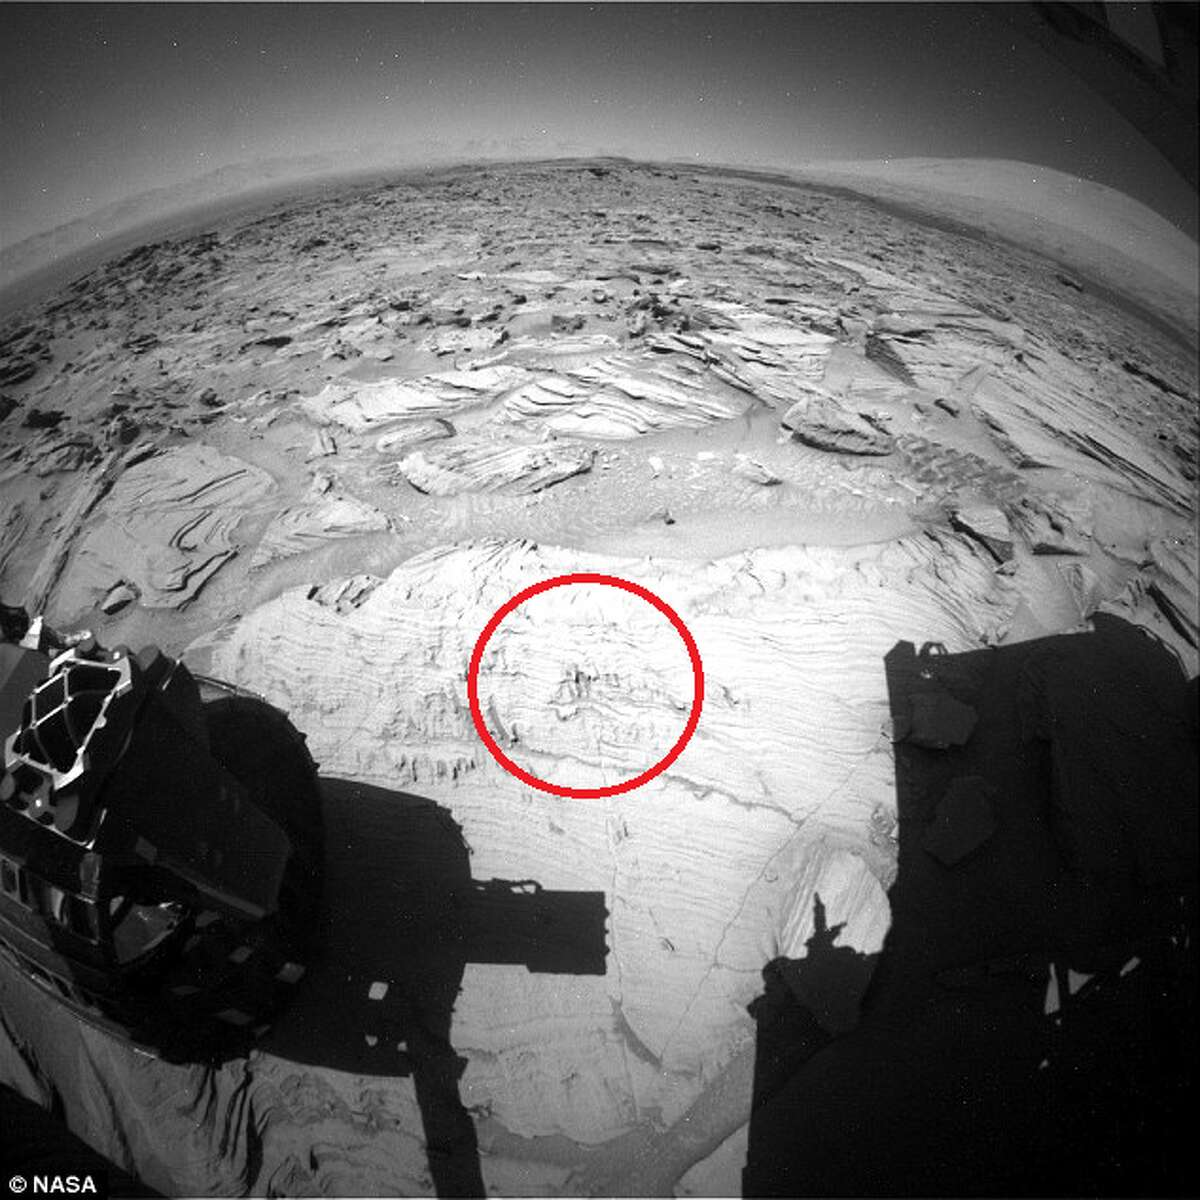 GALLERY: The weirdest things people claim they spotted on Mars Cave painting